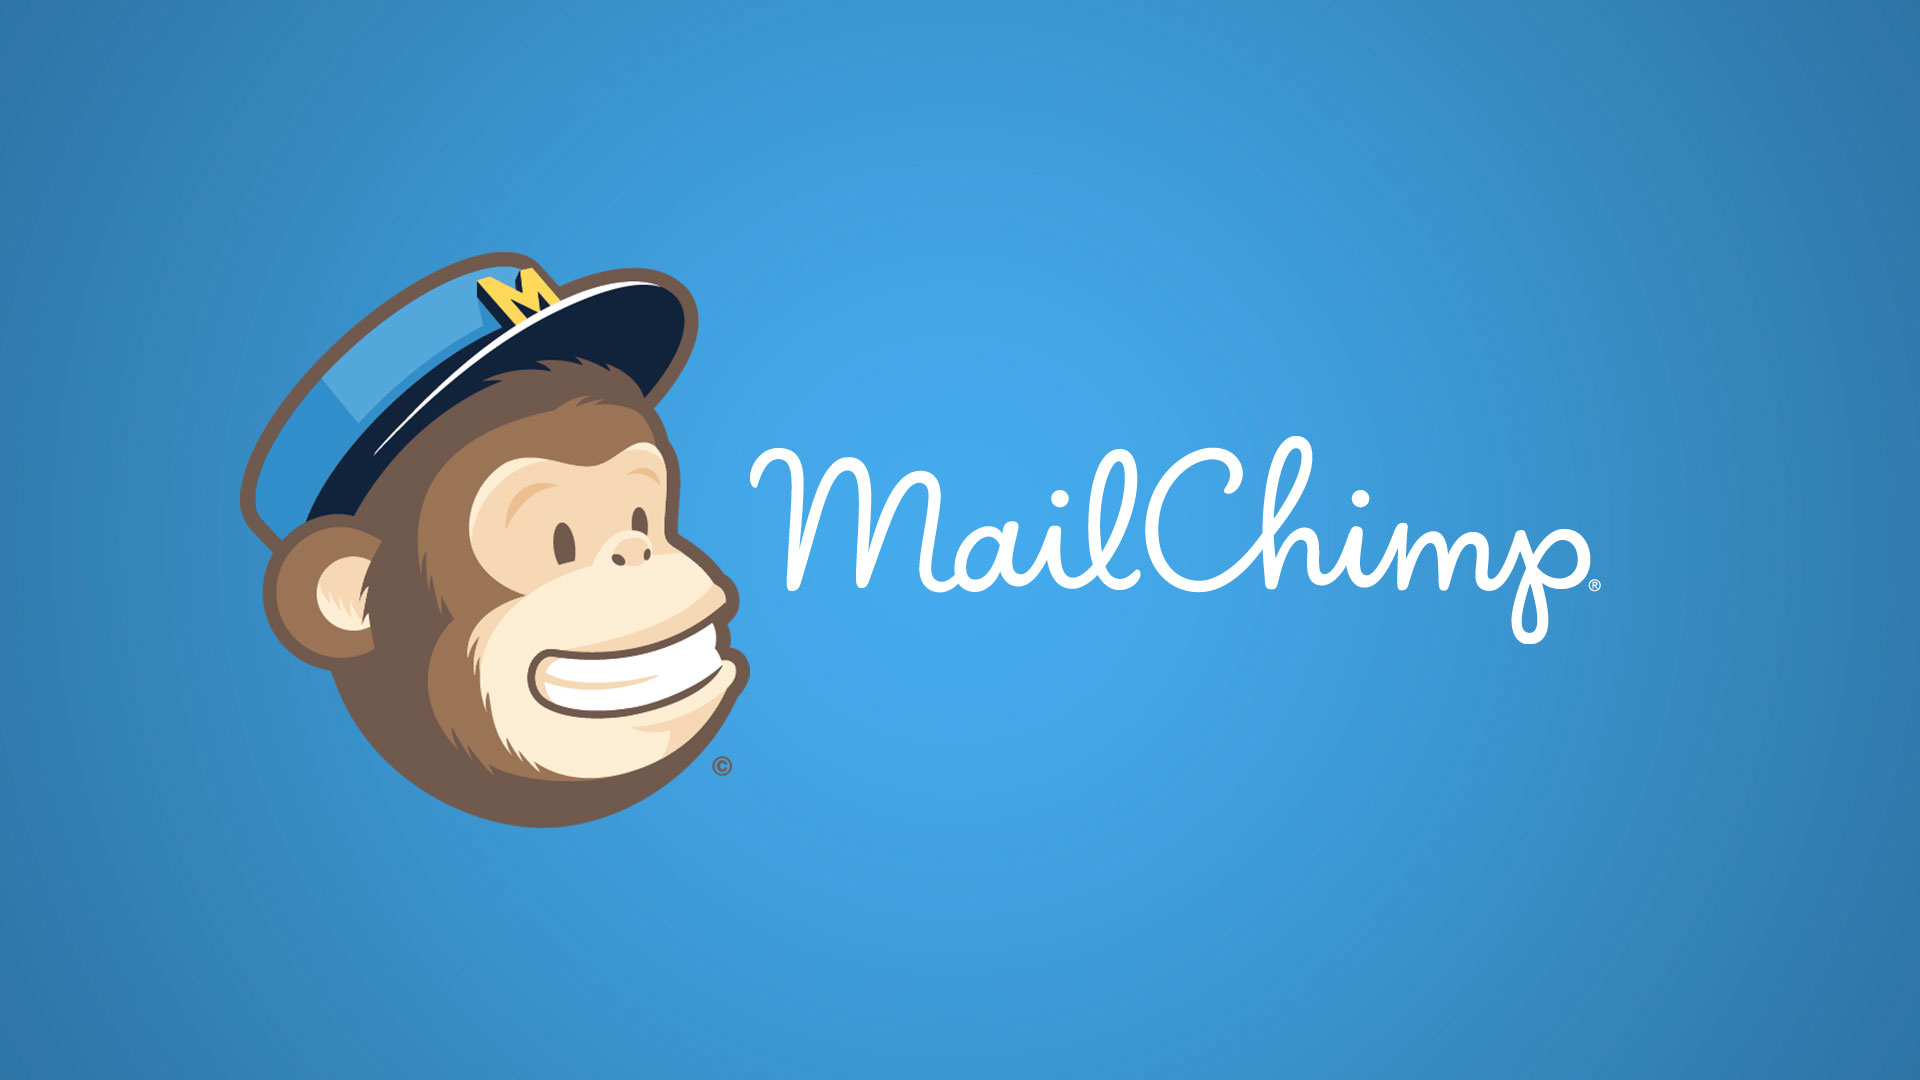 Mailchimp servizio web di email marketing